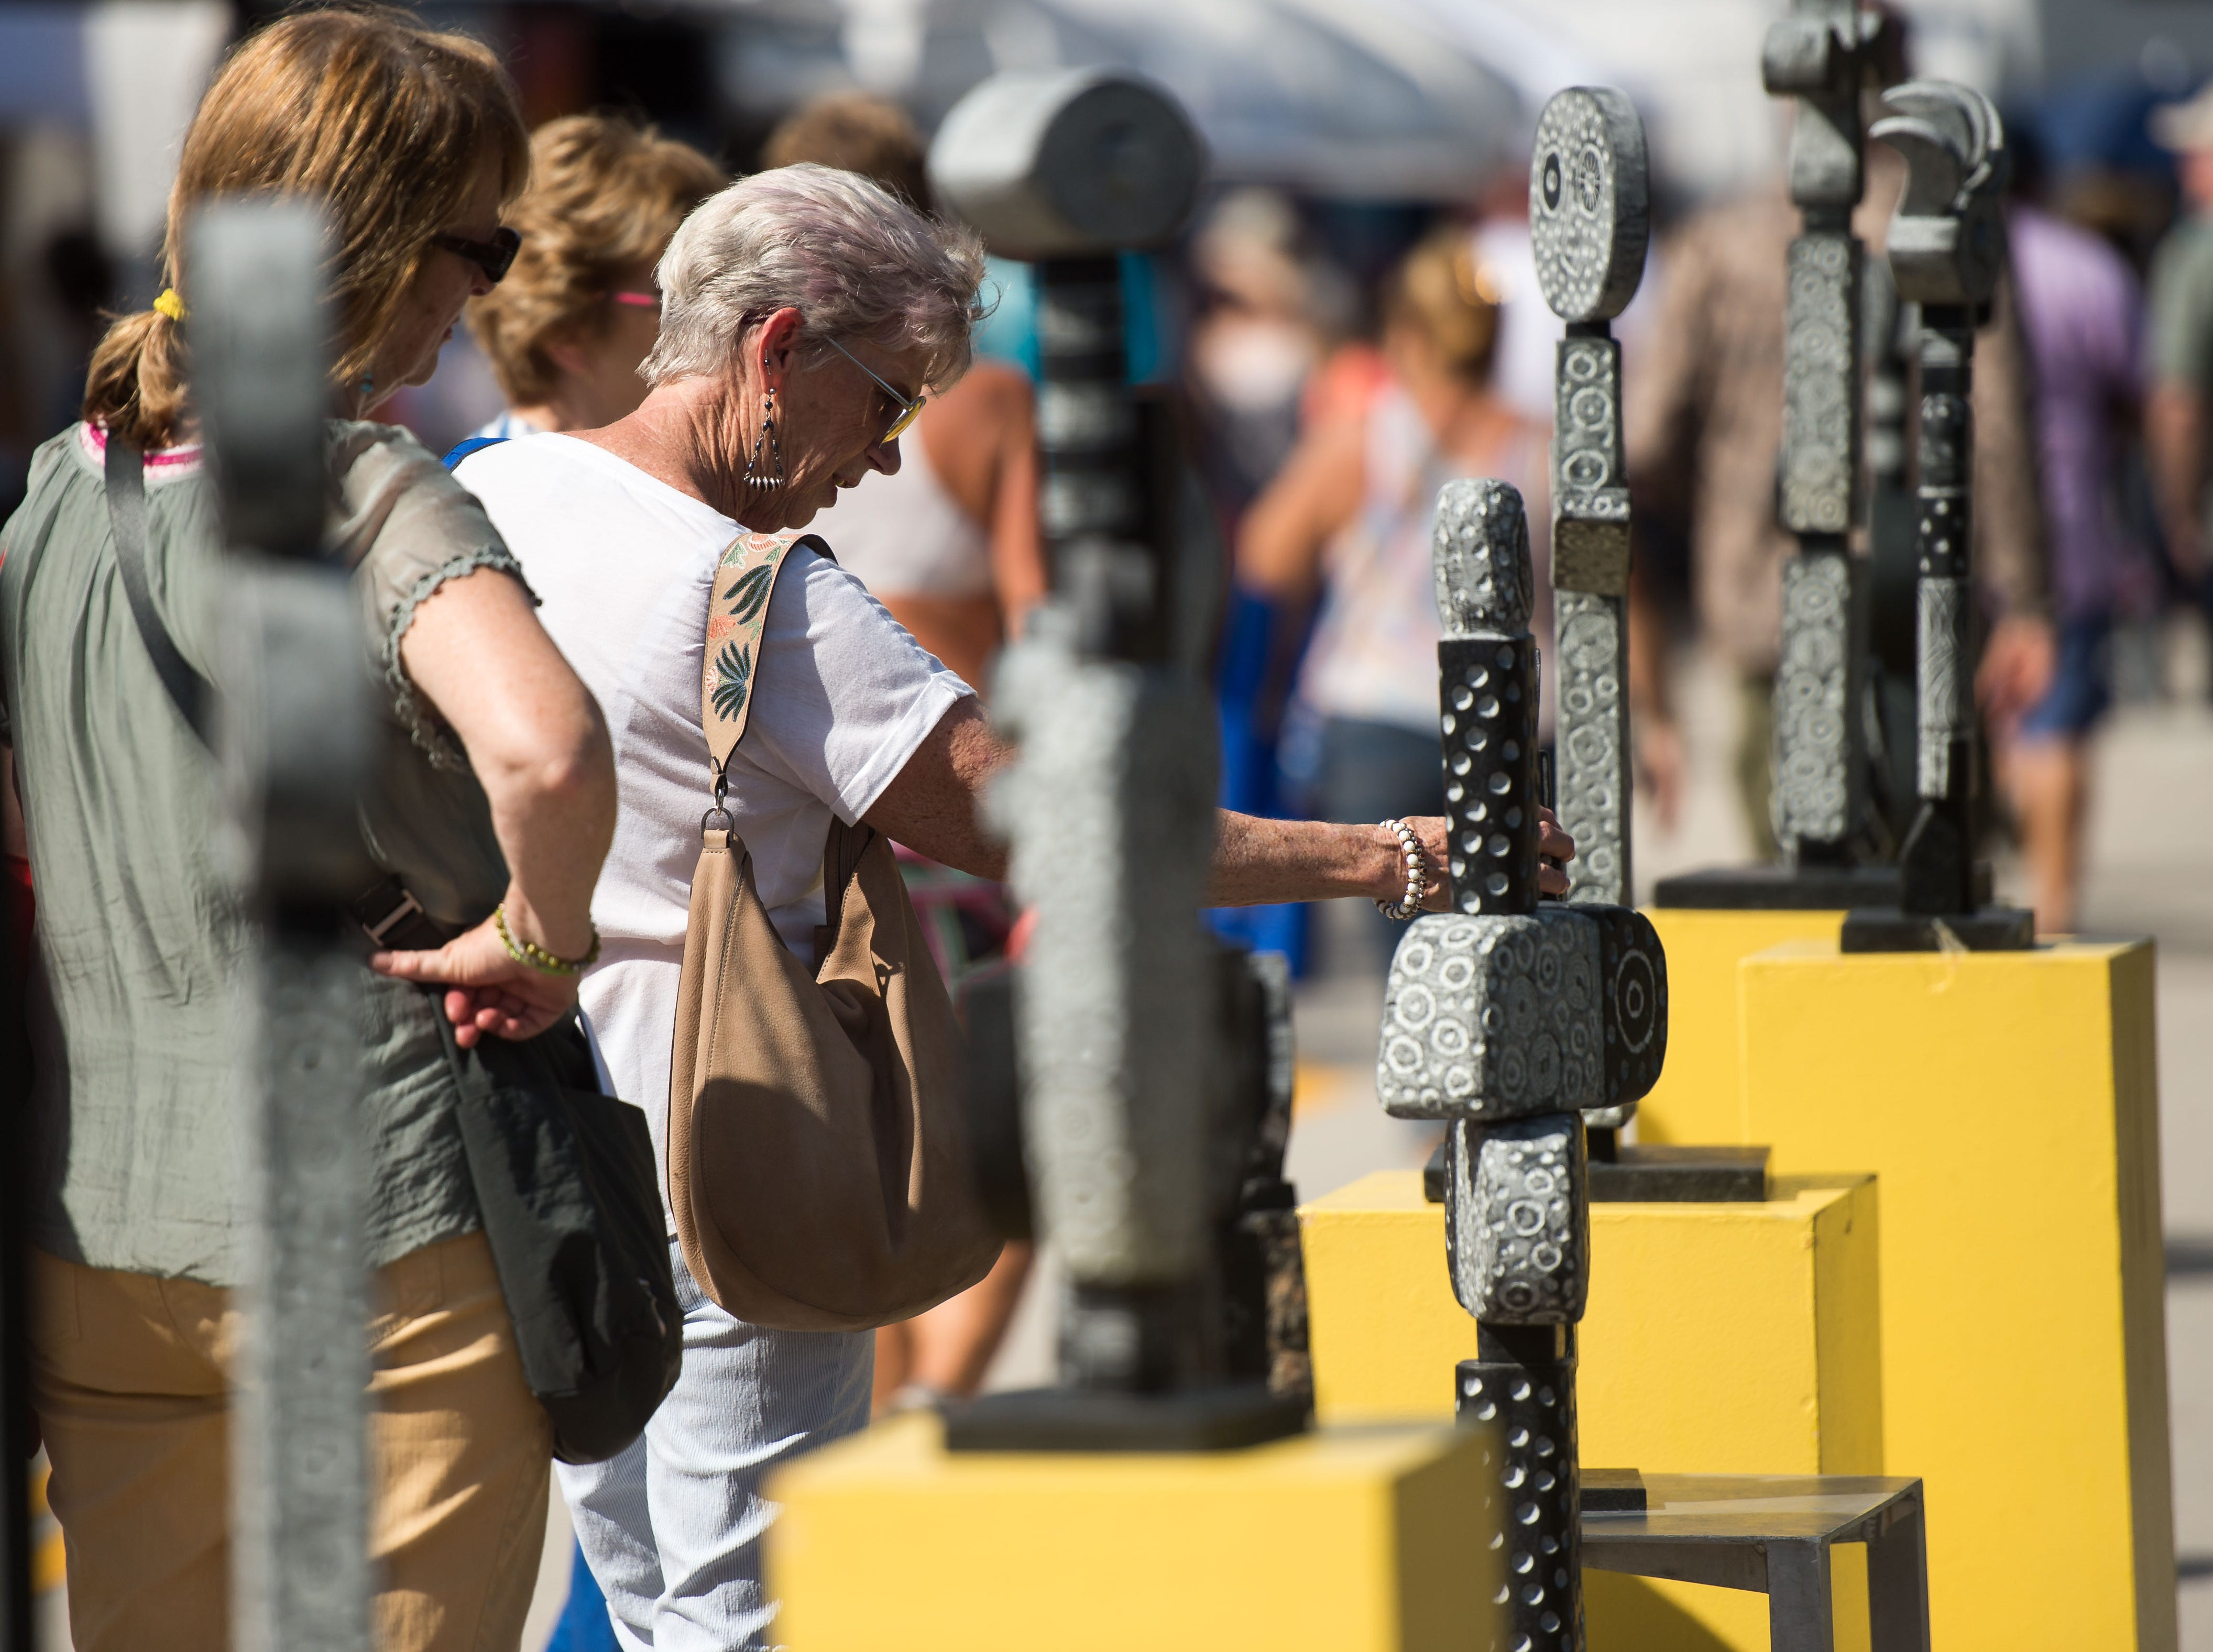 Artists and vendors line Dixie Highway from Bridge Road to Venus Street at the 18th annual Hobe Sound Festival of the Arts on Saturday, Feb. 2, 2019, in Hobe Sound. The free outdoor event, which features top artists and skilled craft artisans from around the country, continues from 10 a.m. to 5 p.m. on Sunday.